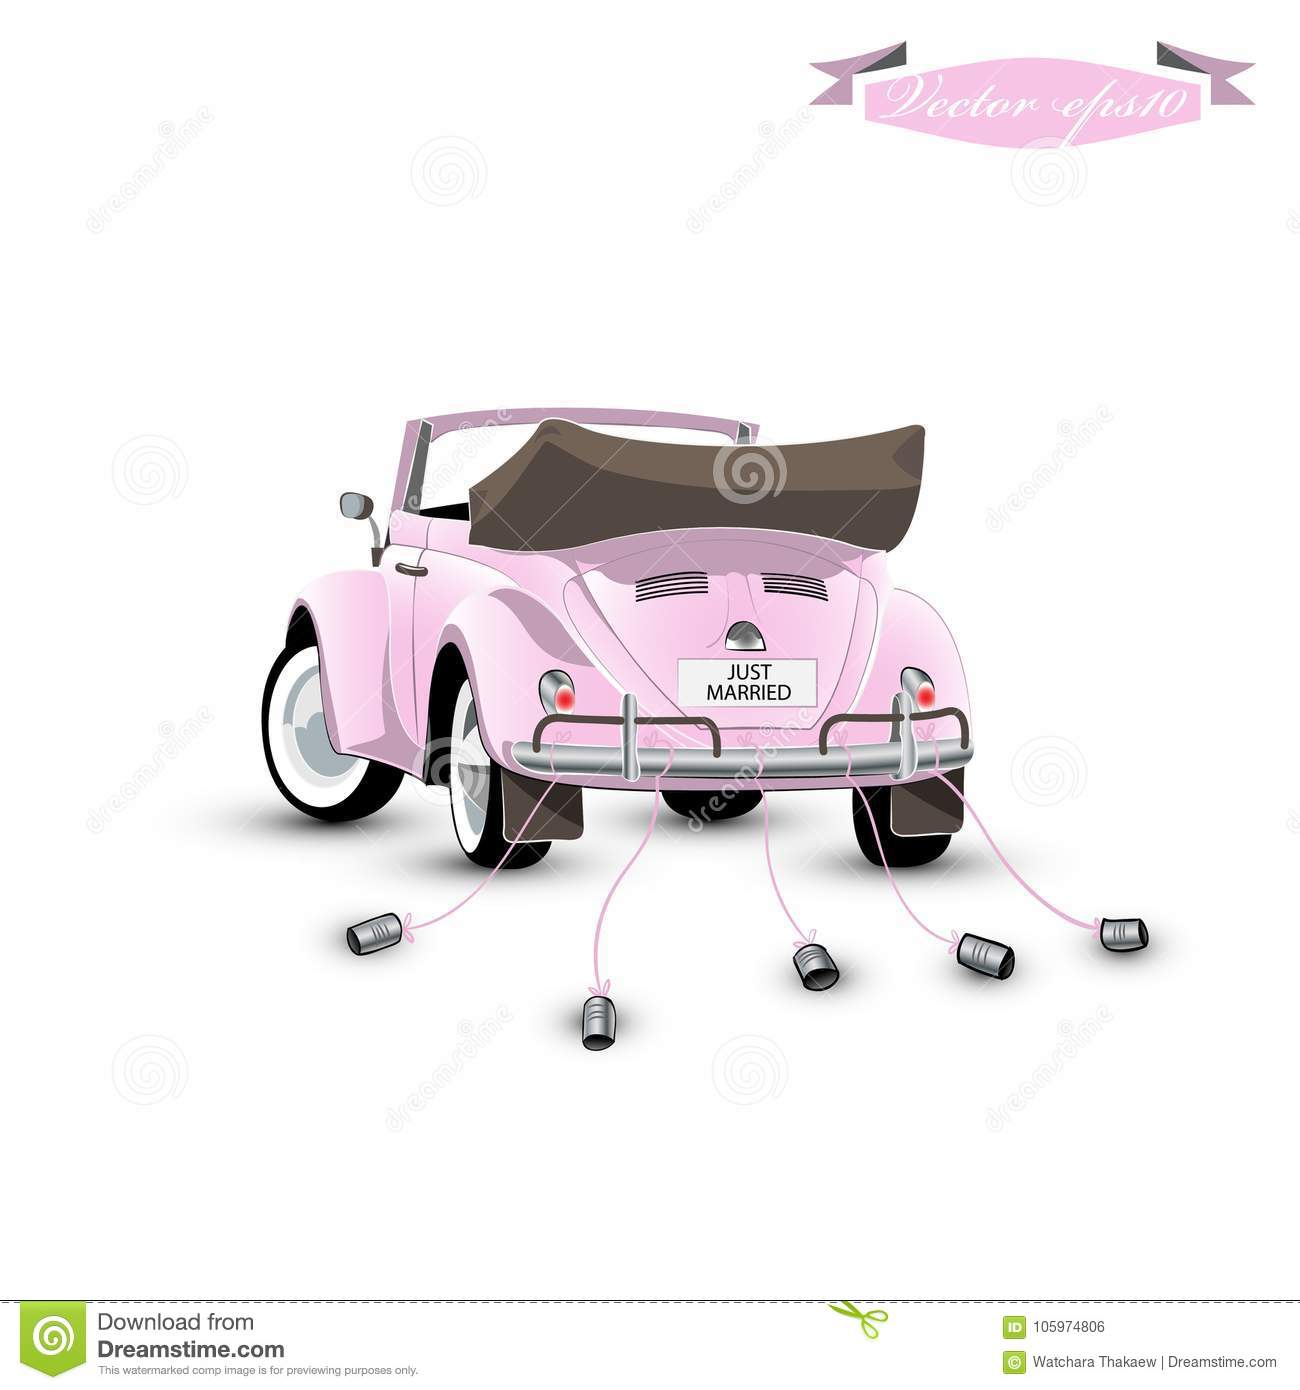 Graphic Design Vector Of Just Married Vintage Car With